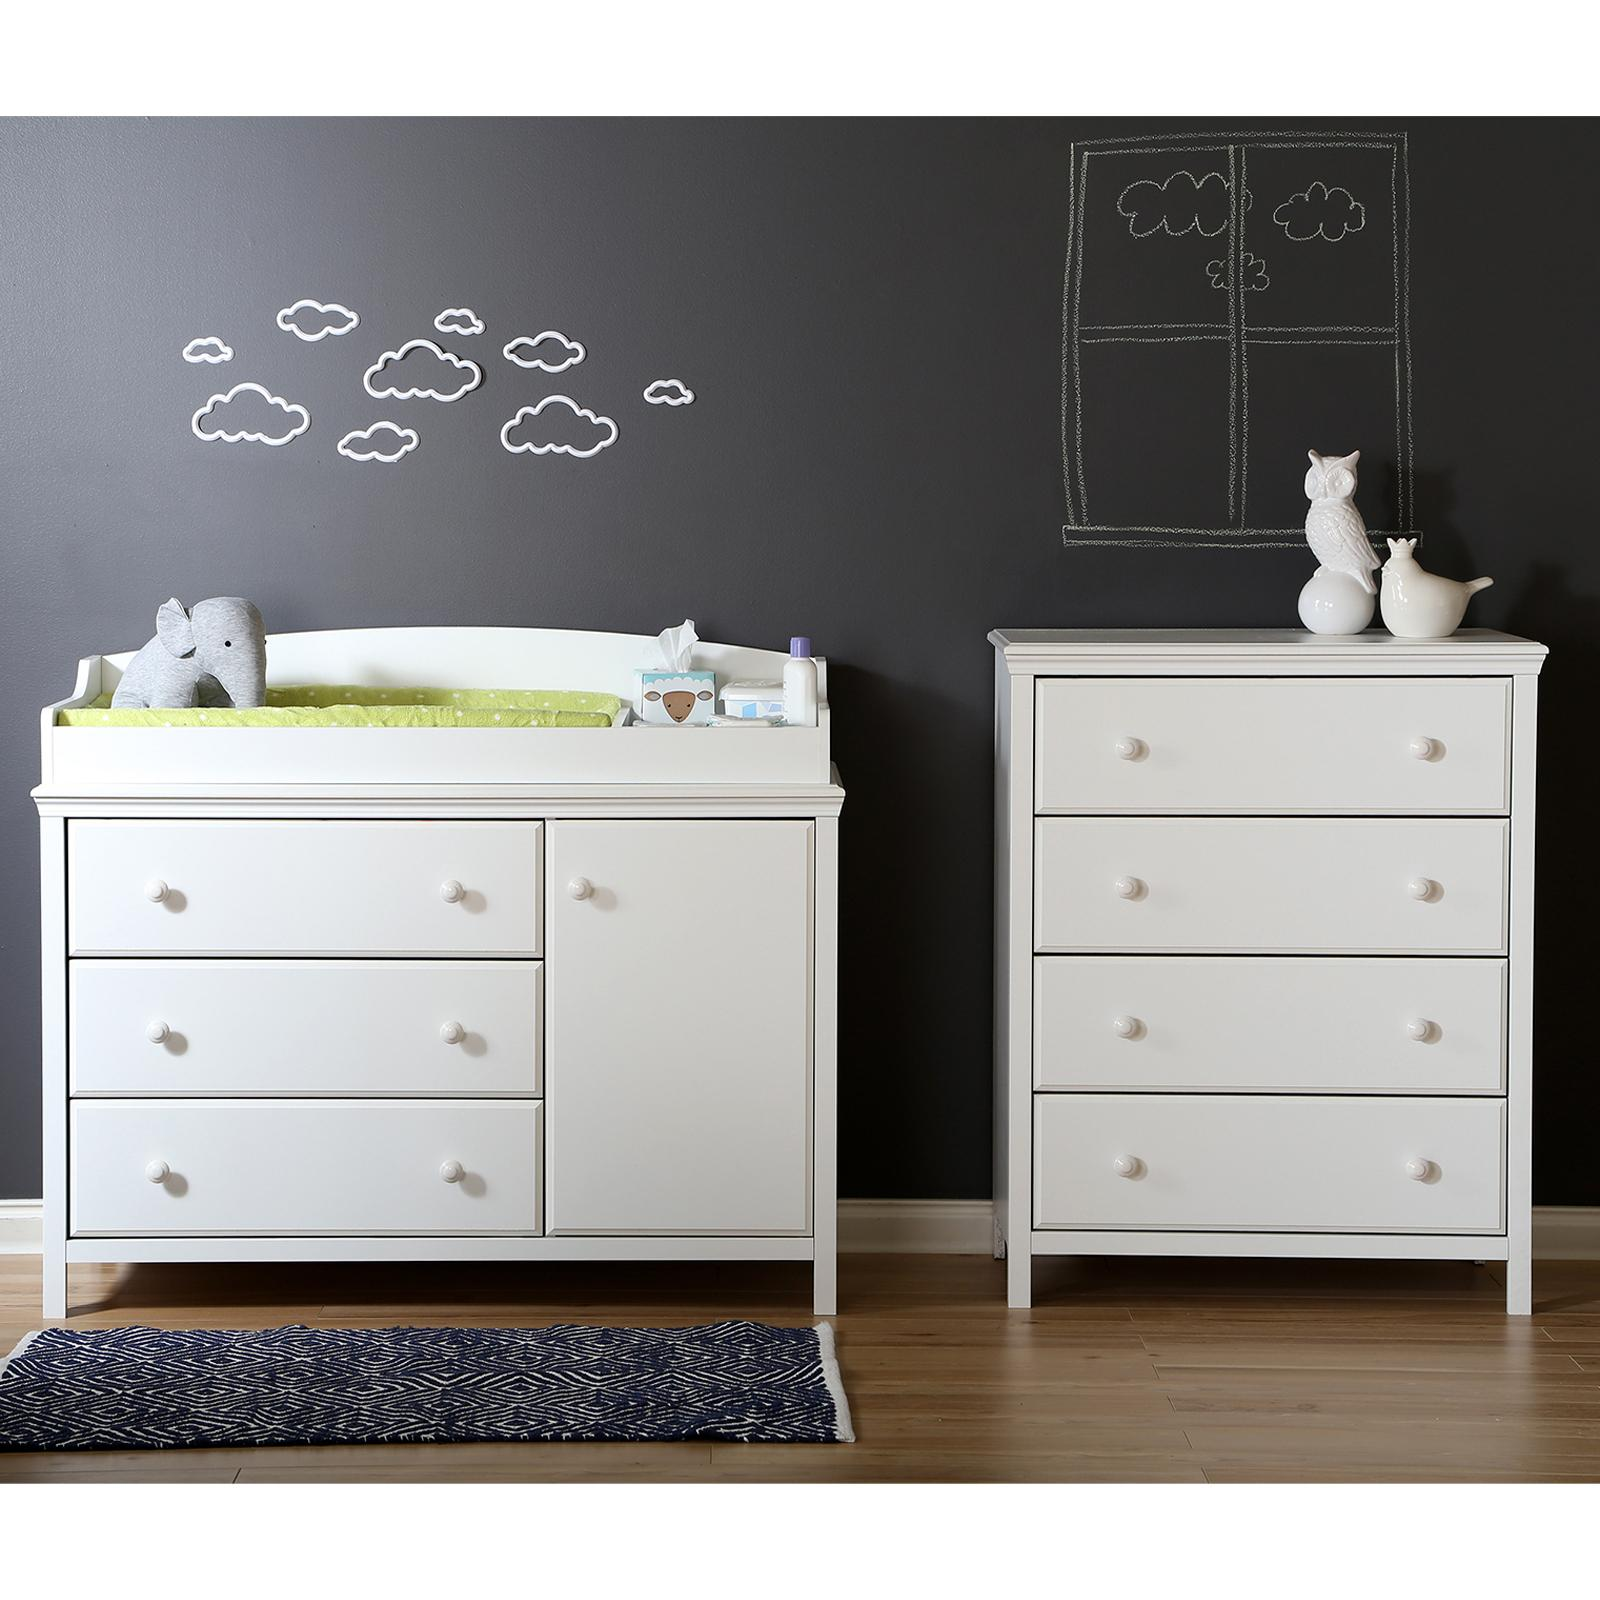 South Shore Cotton Candy Changing Table and 4 Drawer Ches...